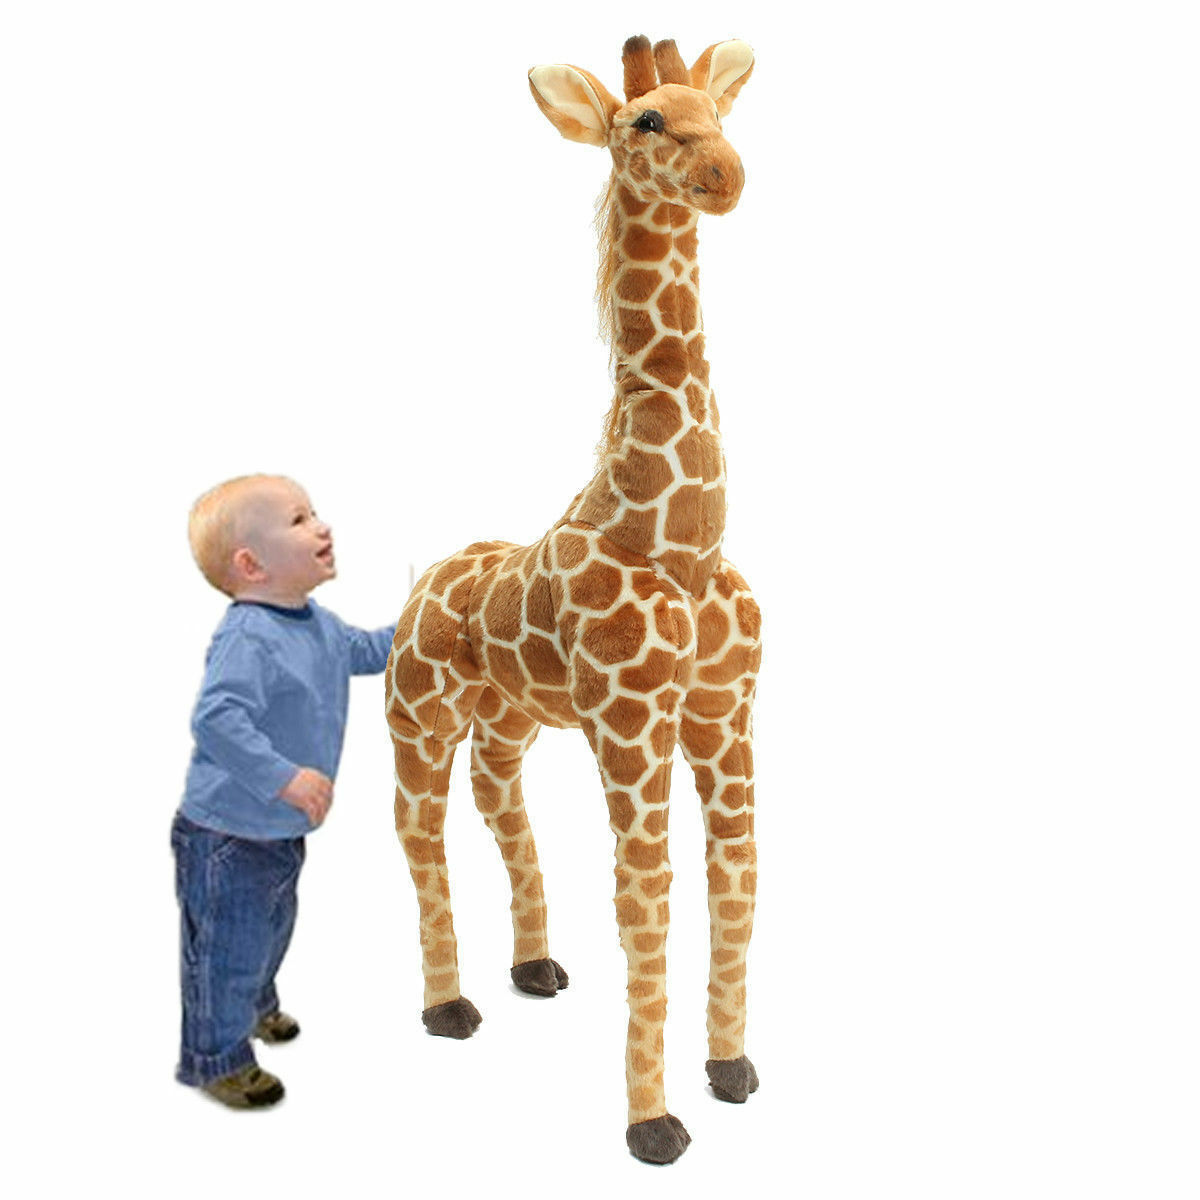 2019 HOT Plush Giraffe Toy Doll Giant Large Stuffed Animals Soft Doll kids Gift